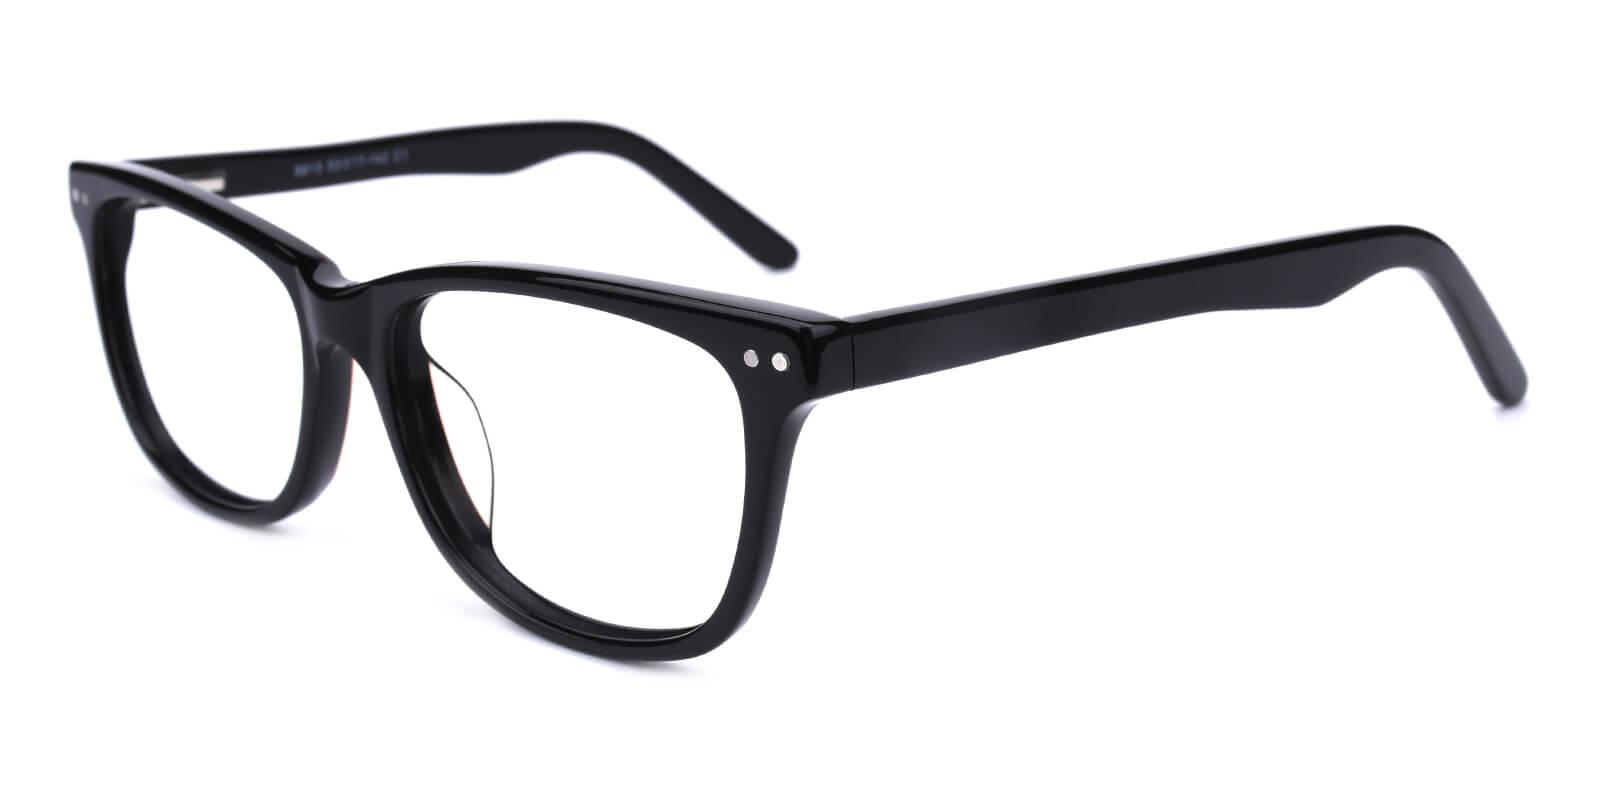 Prologue-Black-Rectangle-Acetate-Eyeglasses-additional1